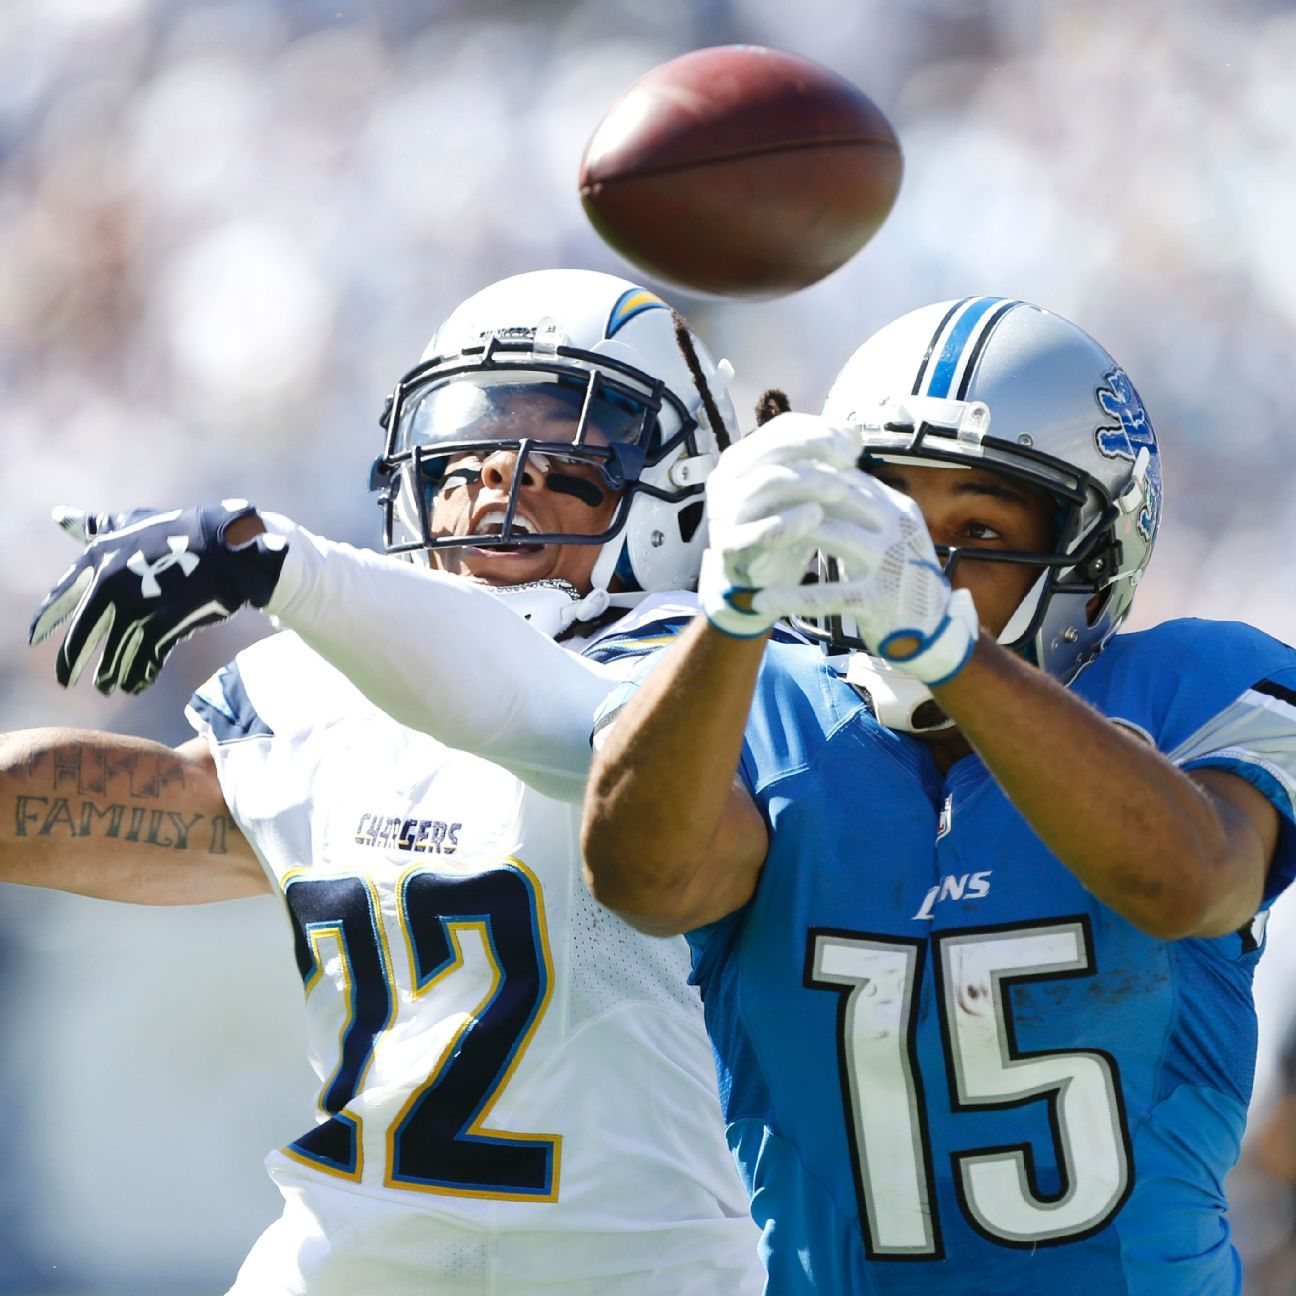 San Diego Chargers Blog: San Diego Chargers' Jason Verrett Bottled Up Detroit Lions